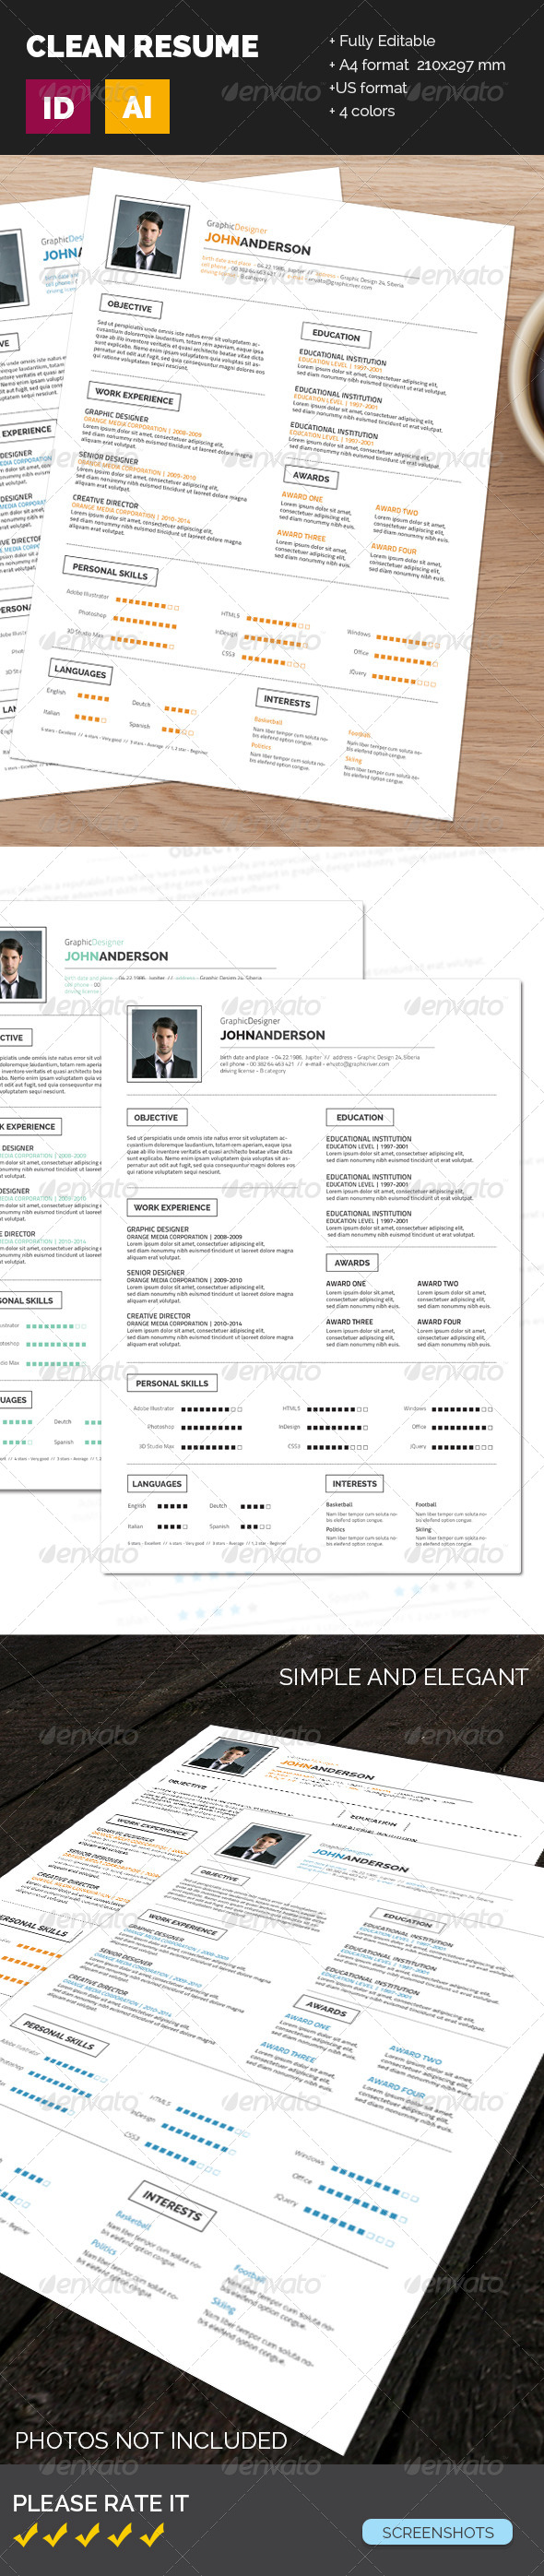 GraphicRiver Clean Resume 7668796